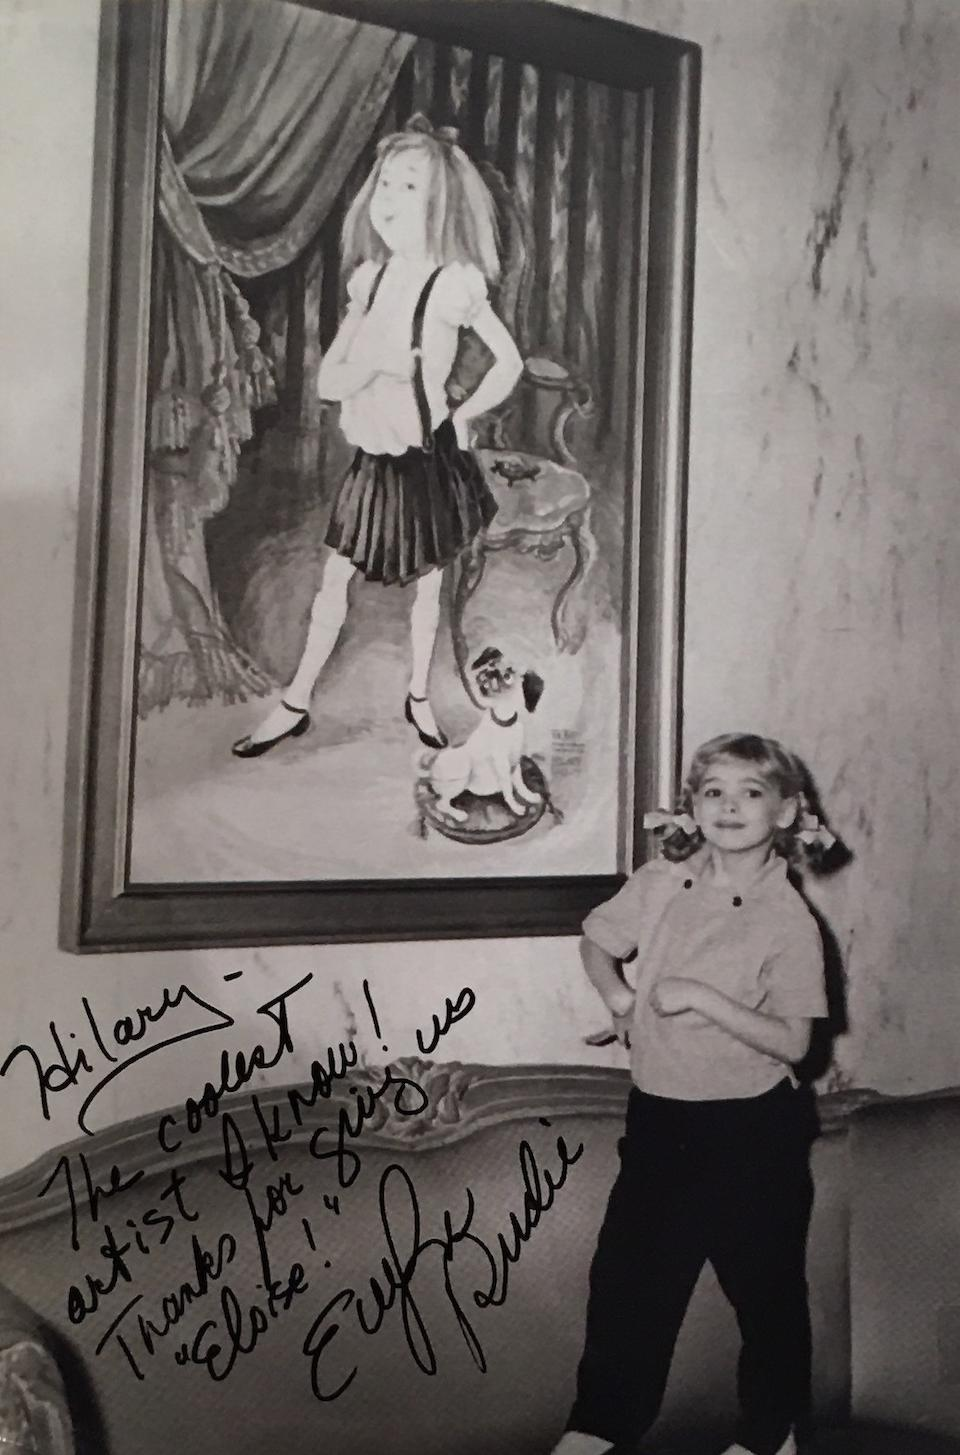 Hilary Knight's ORIGINAL Plaza Hotel portrait of ELOISE. Tempera on board, 54 x 37 inches (1371 x 934 mm), framed: 59 x 42 inches (1500 x 1053 mm),